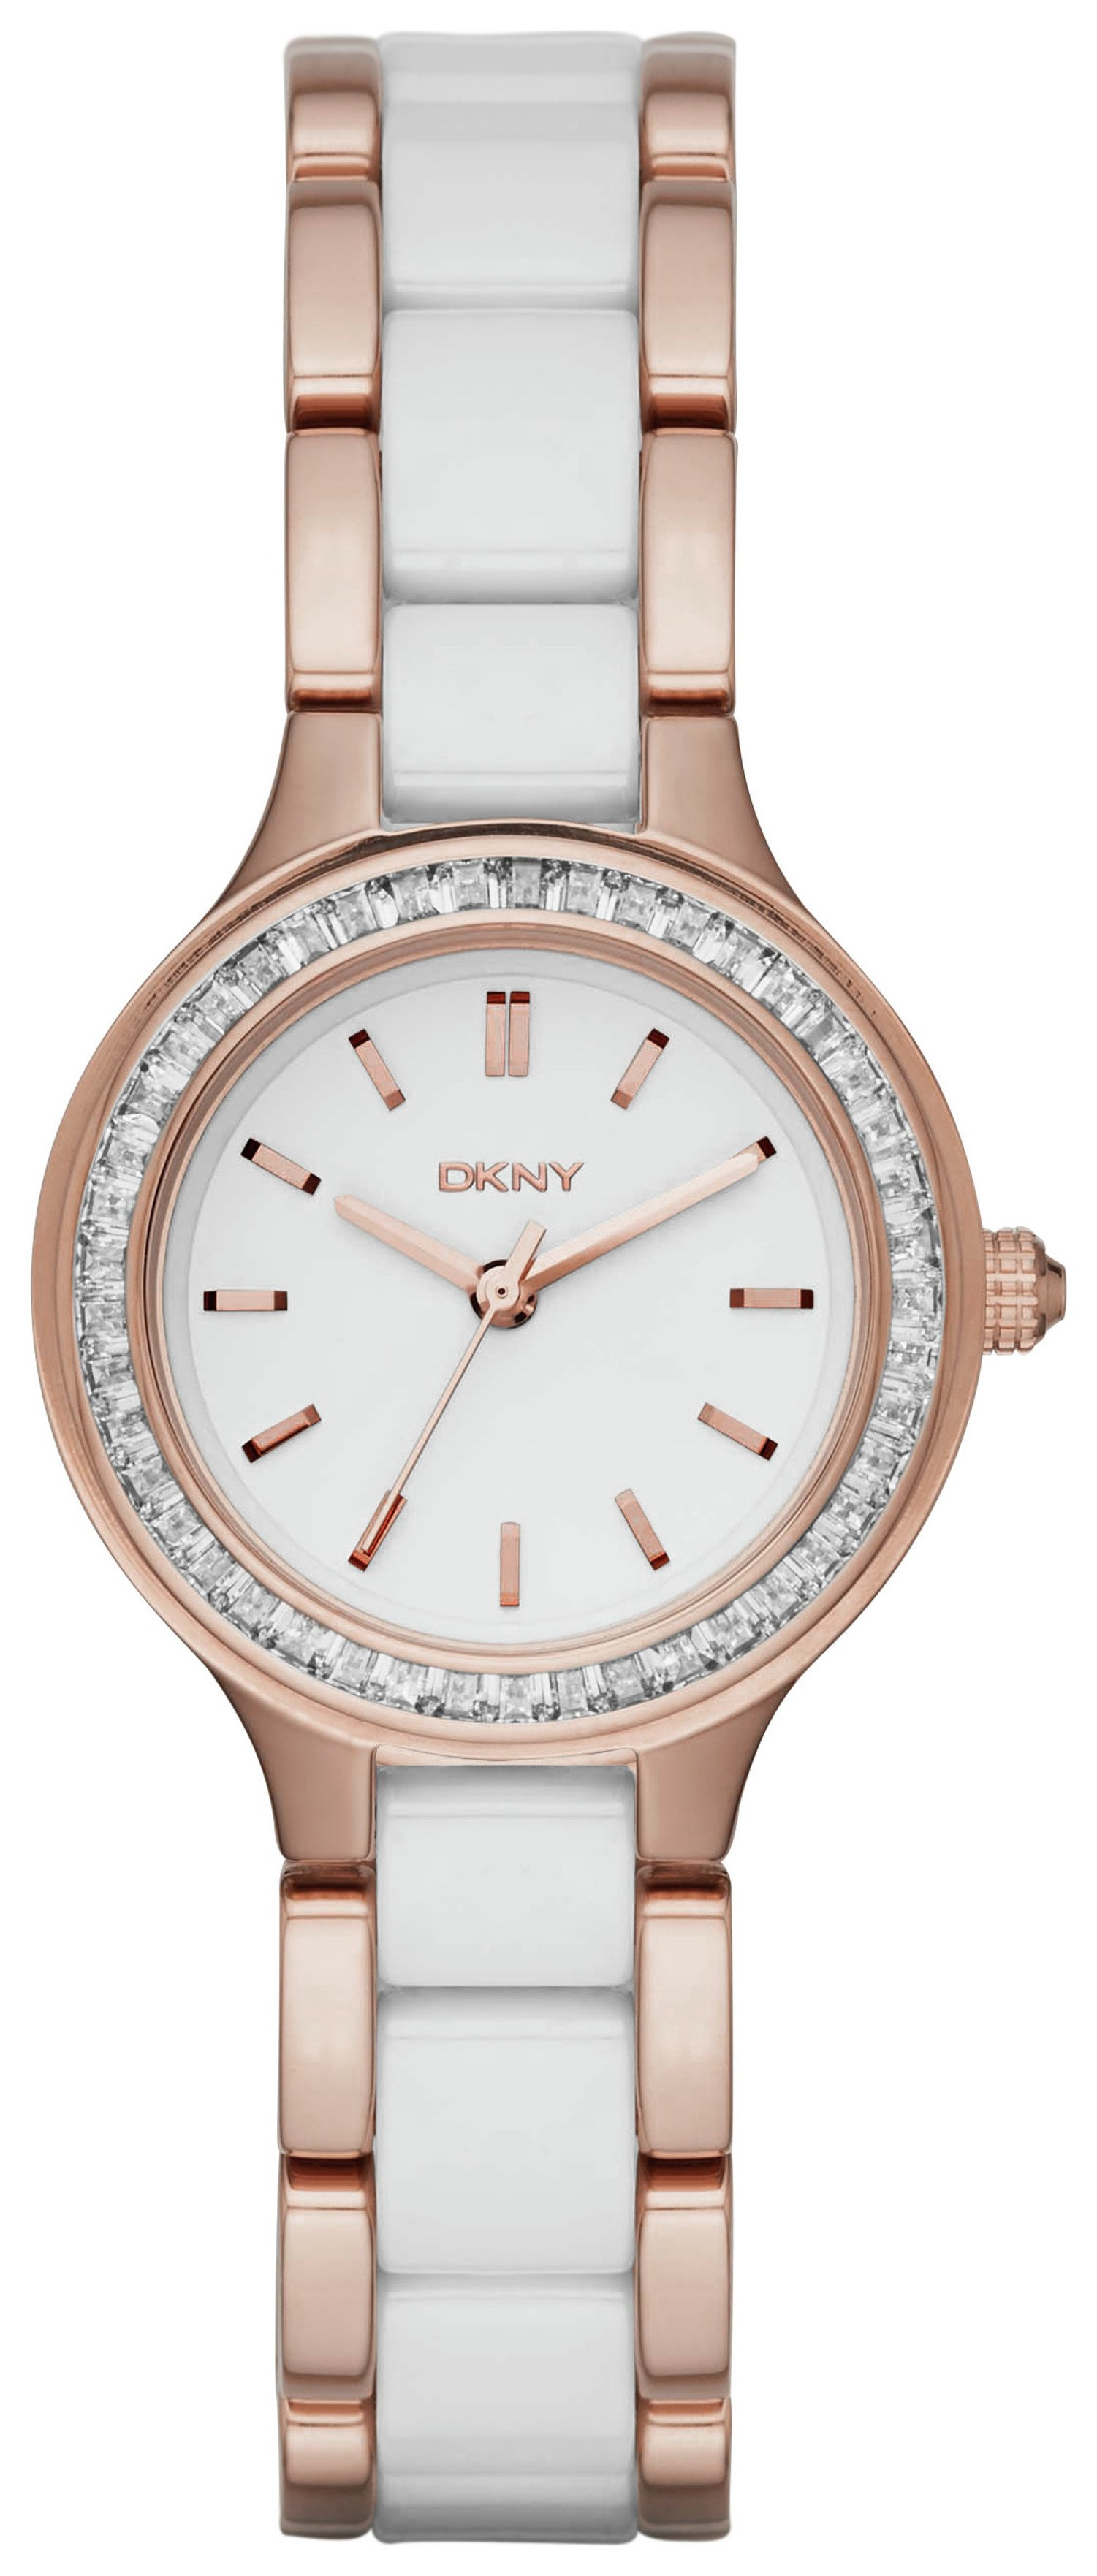 Image of DKNY Ladies' Chambers NY2496 Ceramic Rose Gold Tone Watch